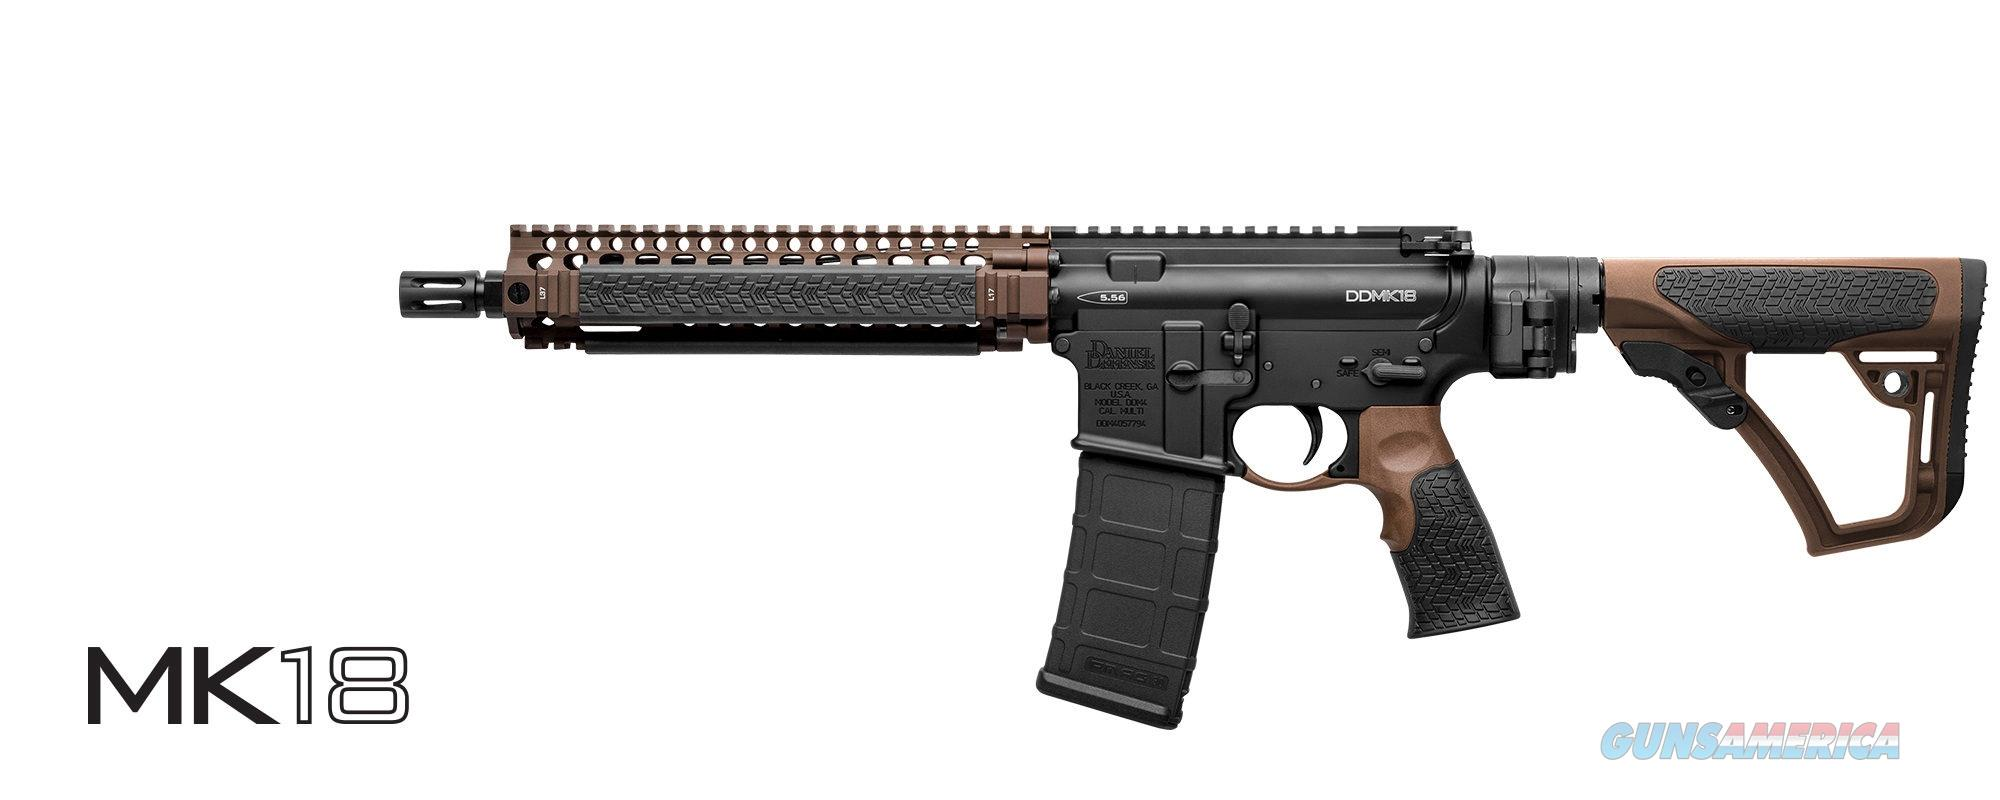 NEW and HARD TO FIND! DANIEL DEFENSE MK18 - FACTORY SBR LAW TACTICAL Brown/Black (M4 AR15) 02-088-09444-047  Guns > Rifles > Daniel Defense > Complete Rifles